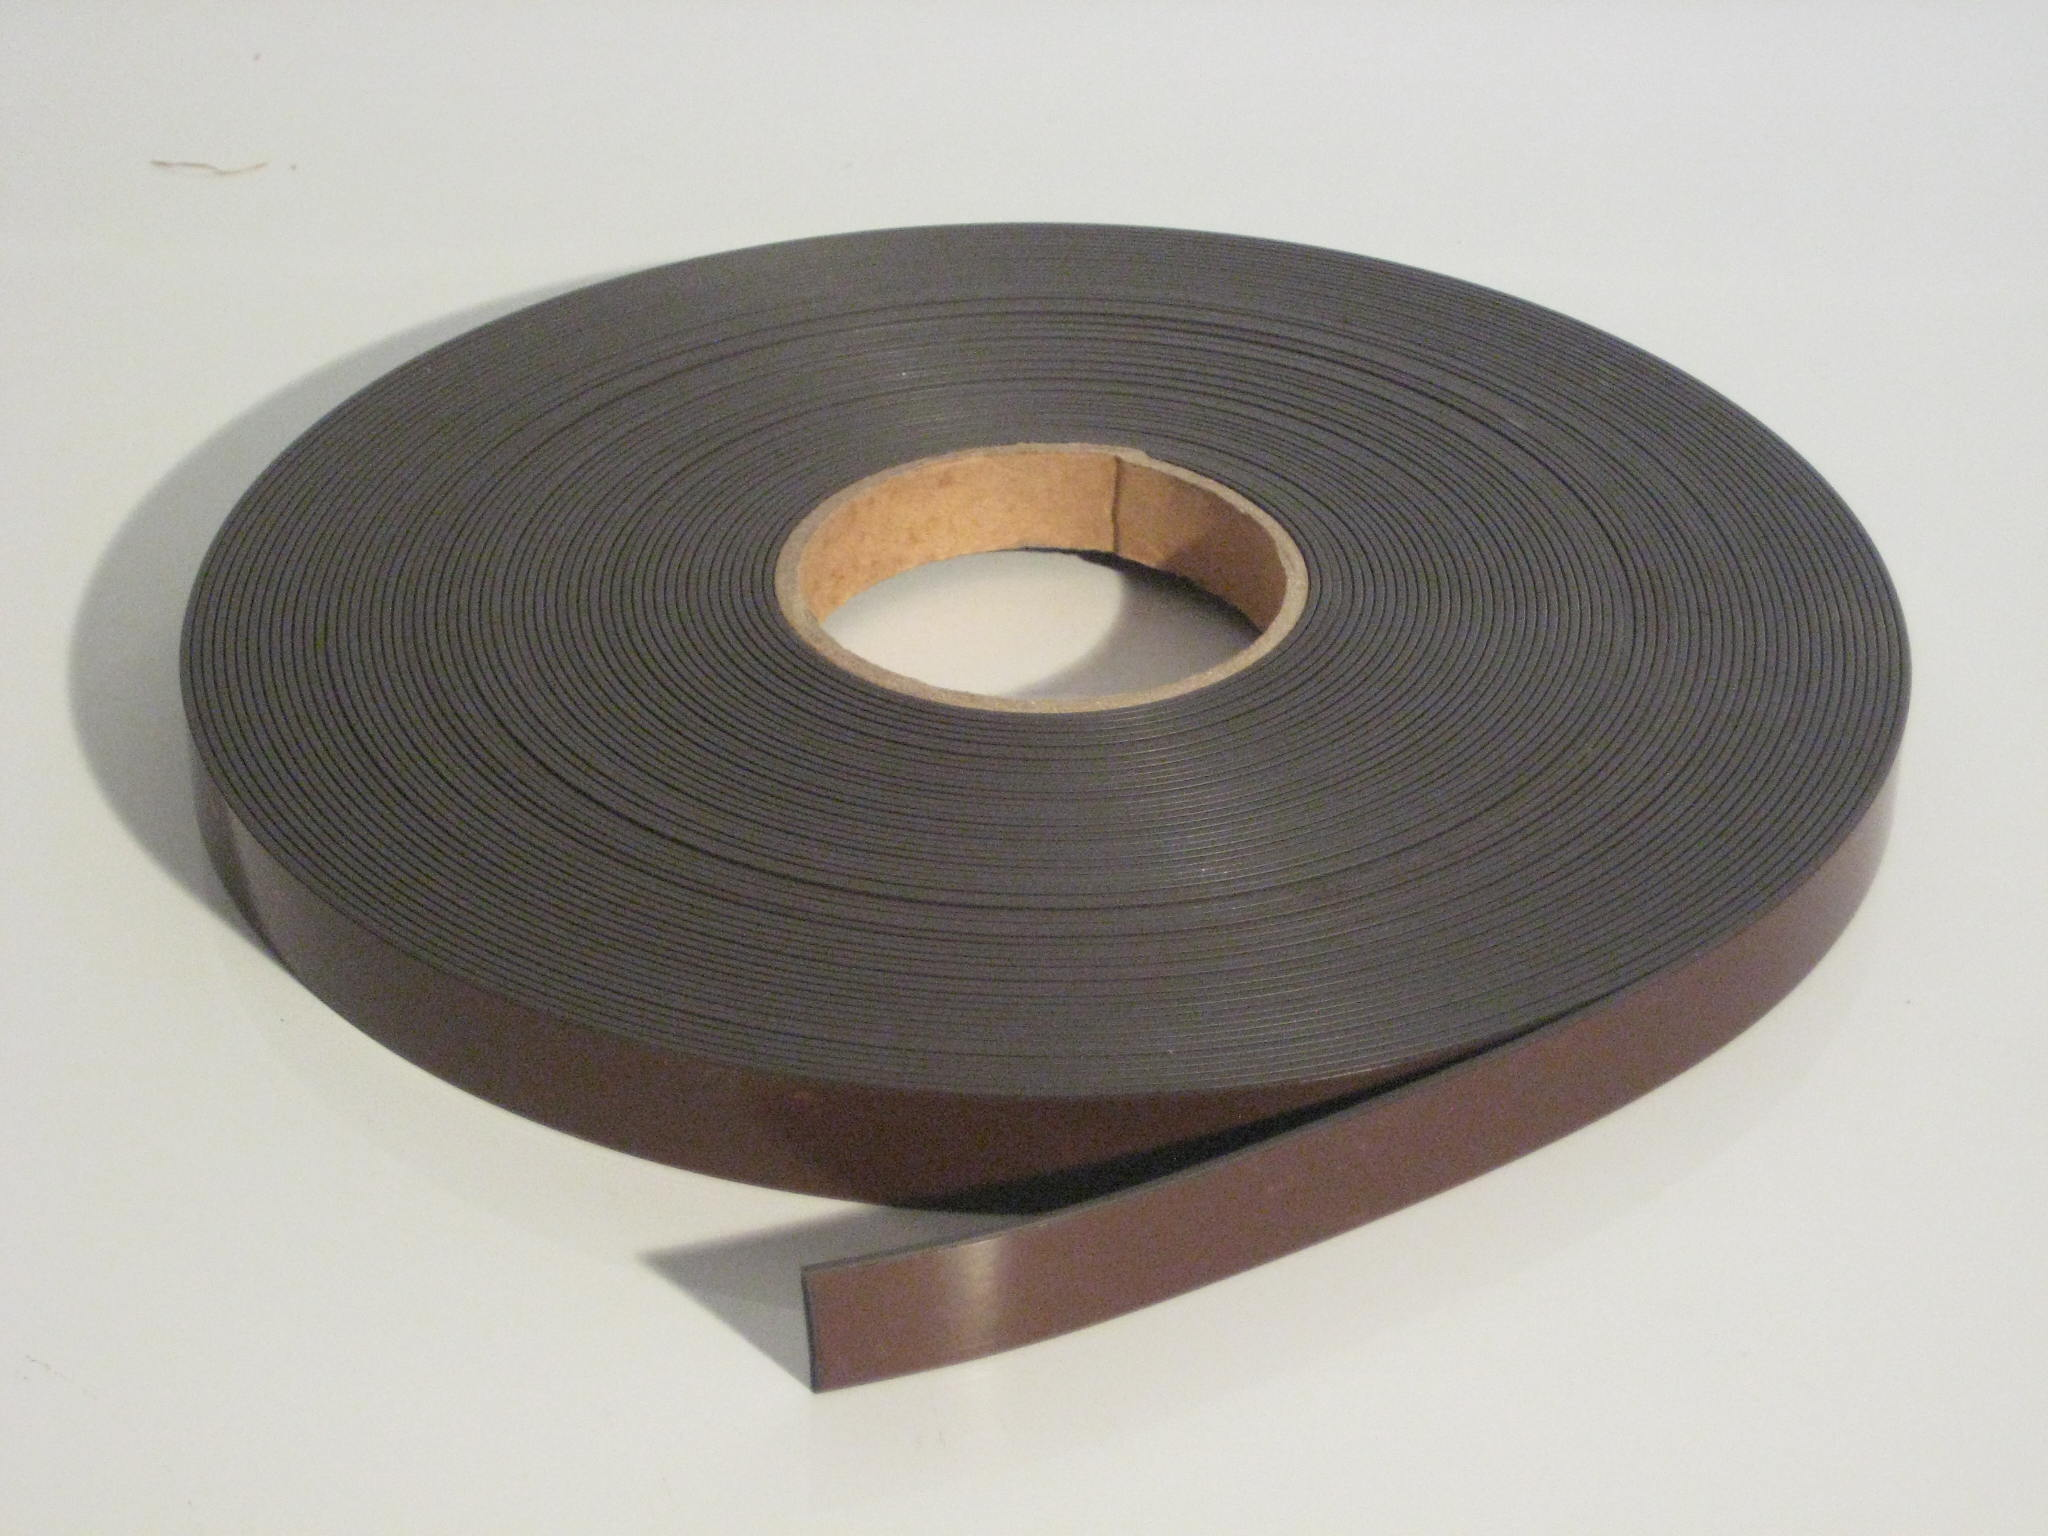 20mm X 1 5mm Premium Self Adhesive Magnetic Tape 3m Roll